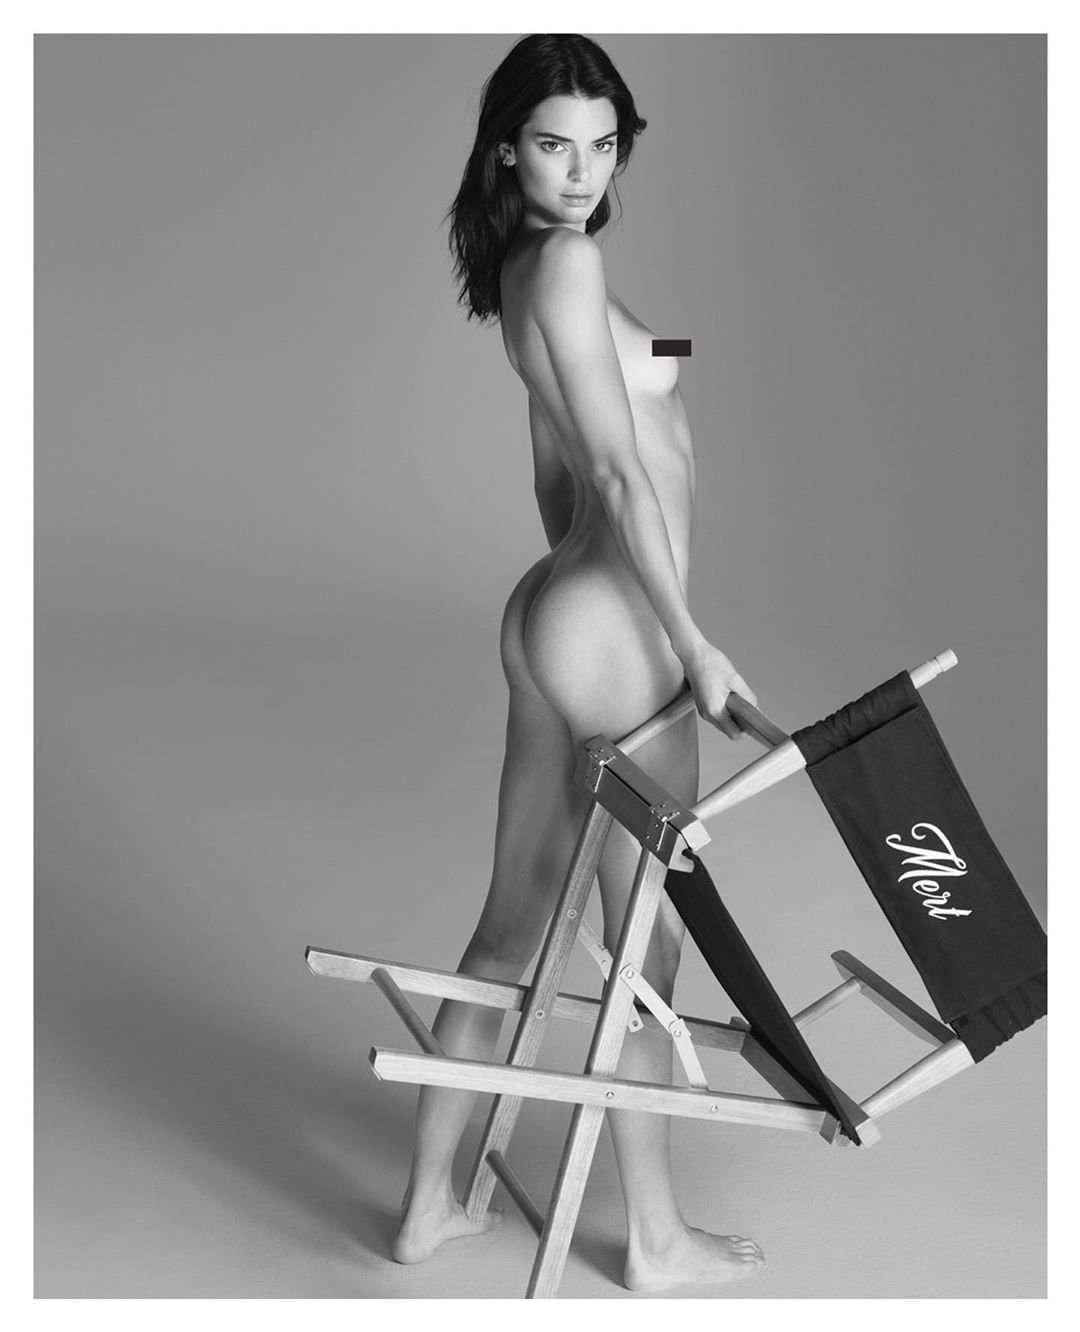 Kendall Jenner bares all in nude photo shoot for top photographer